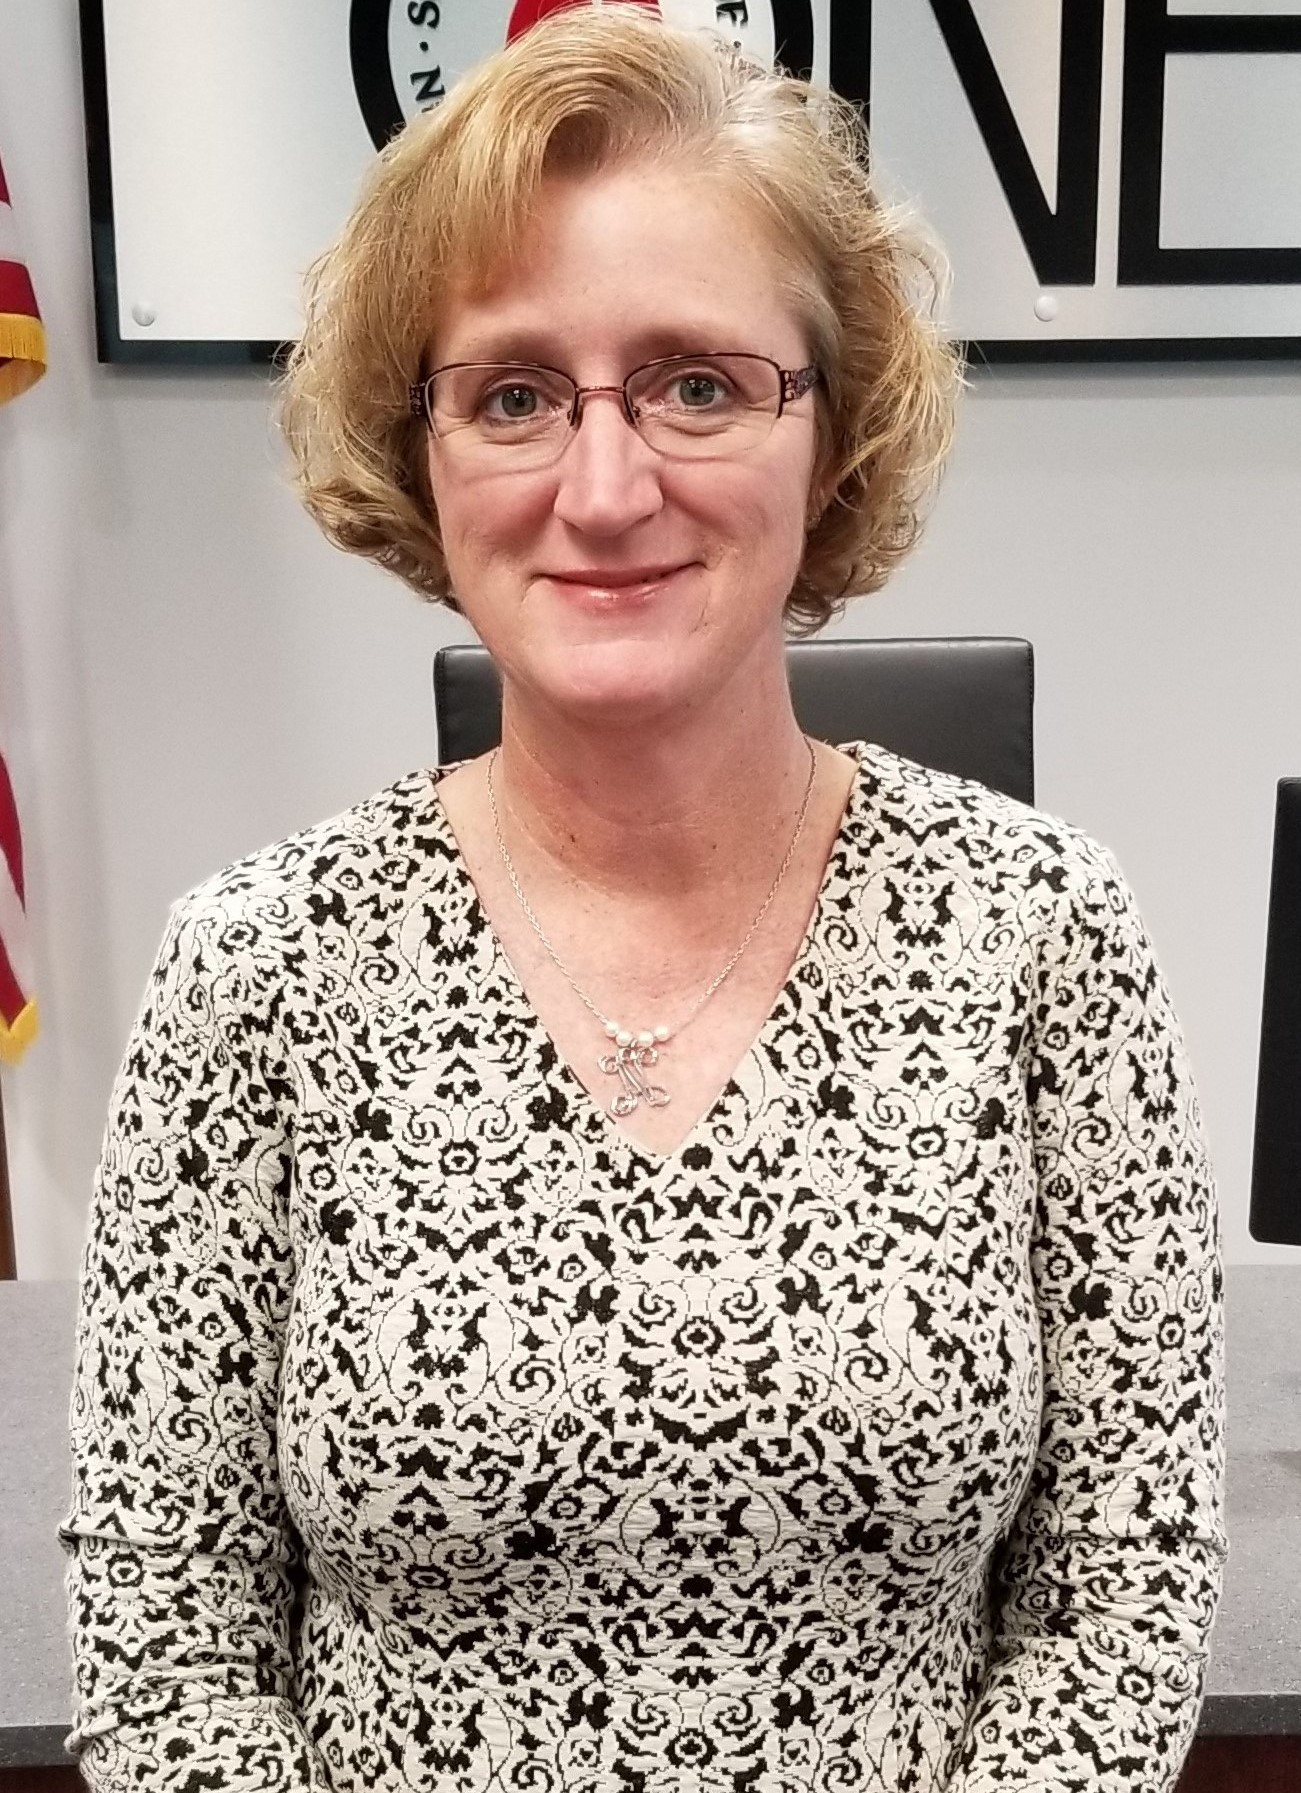 Assistant to the Superintendent Nancy Alford